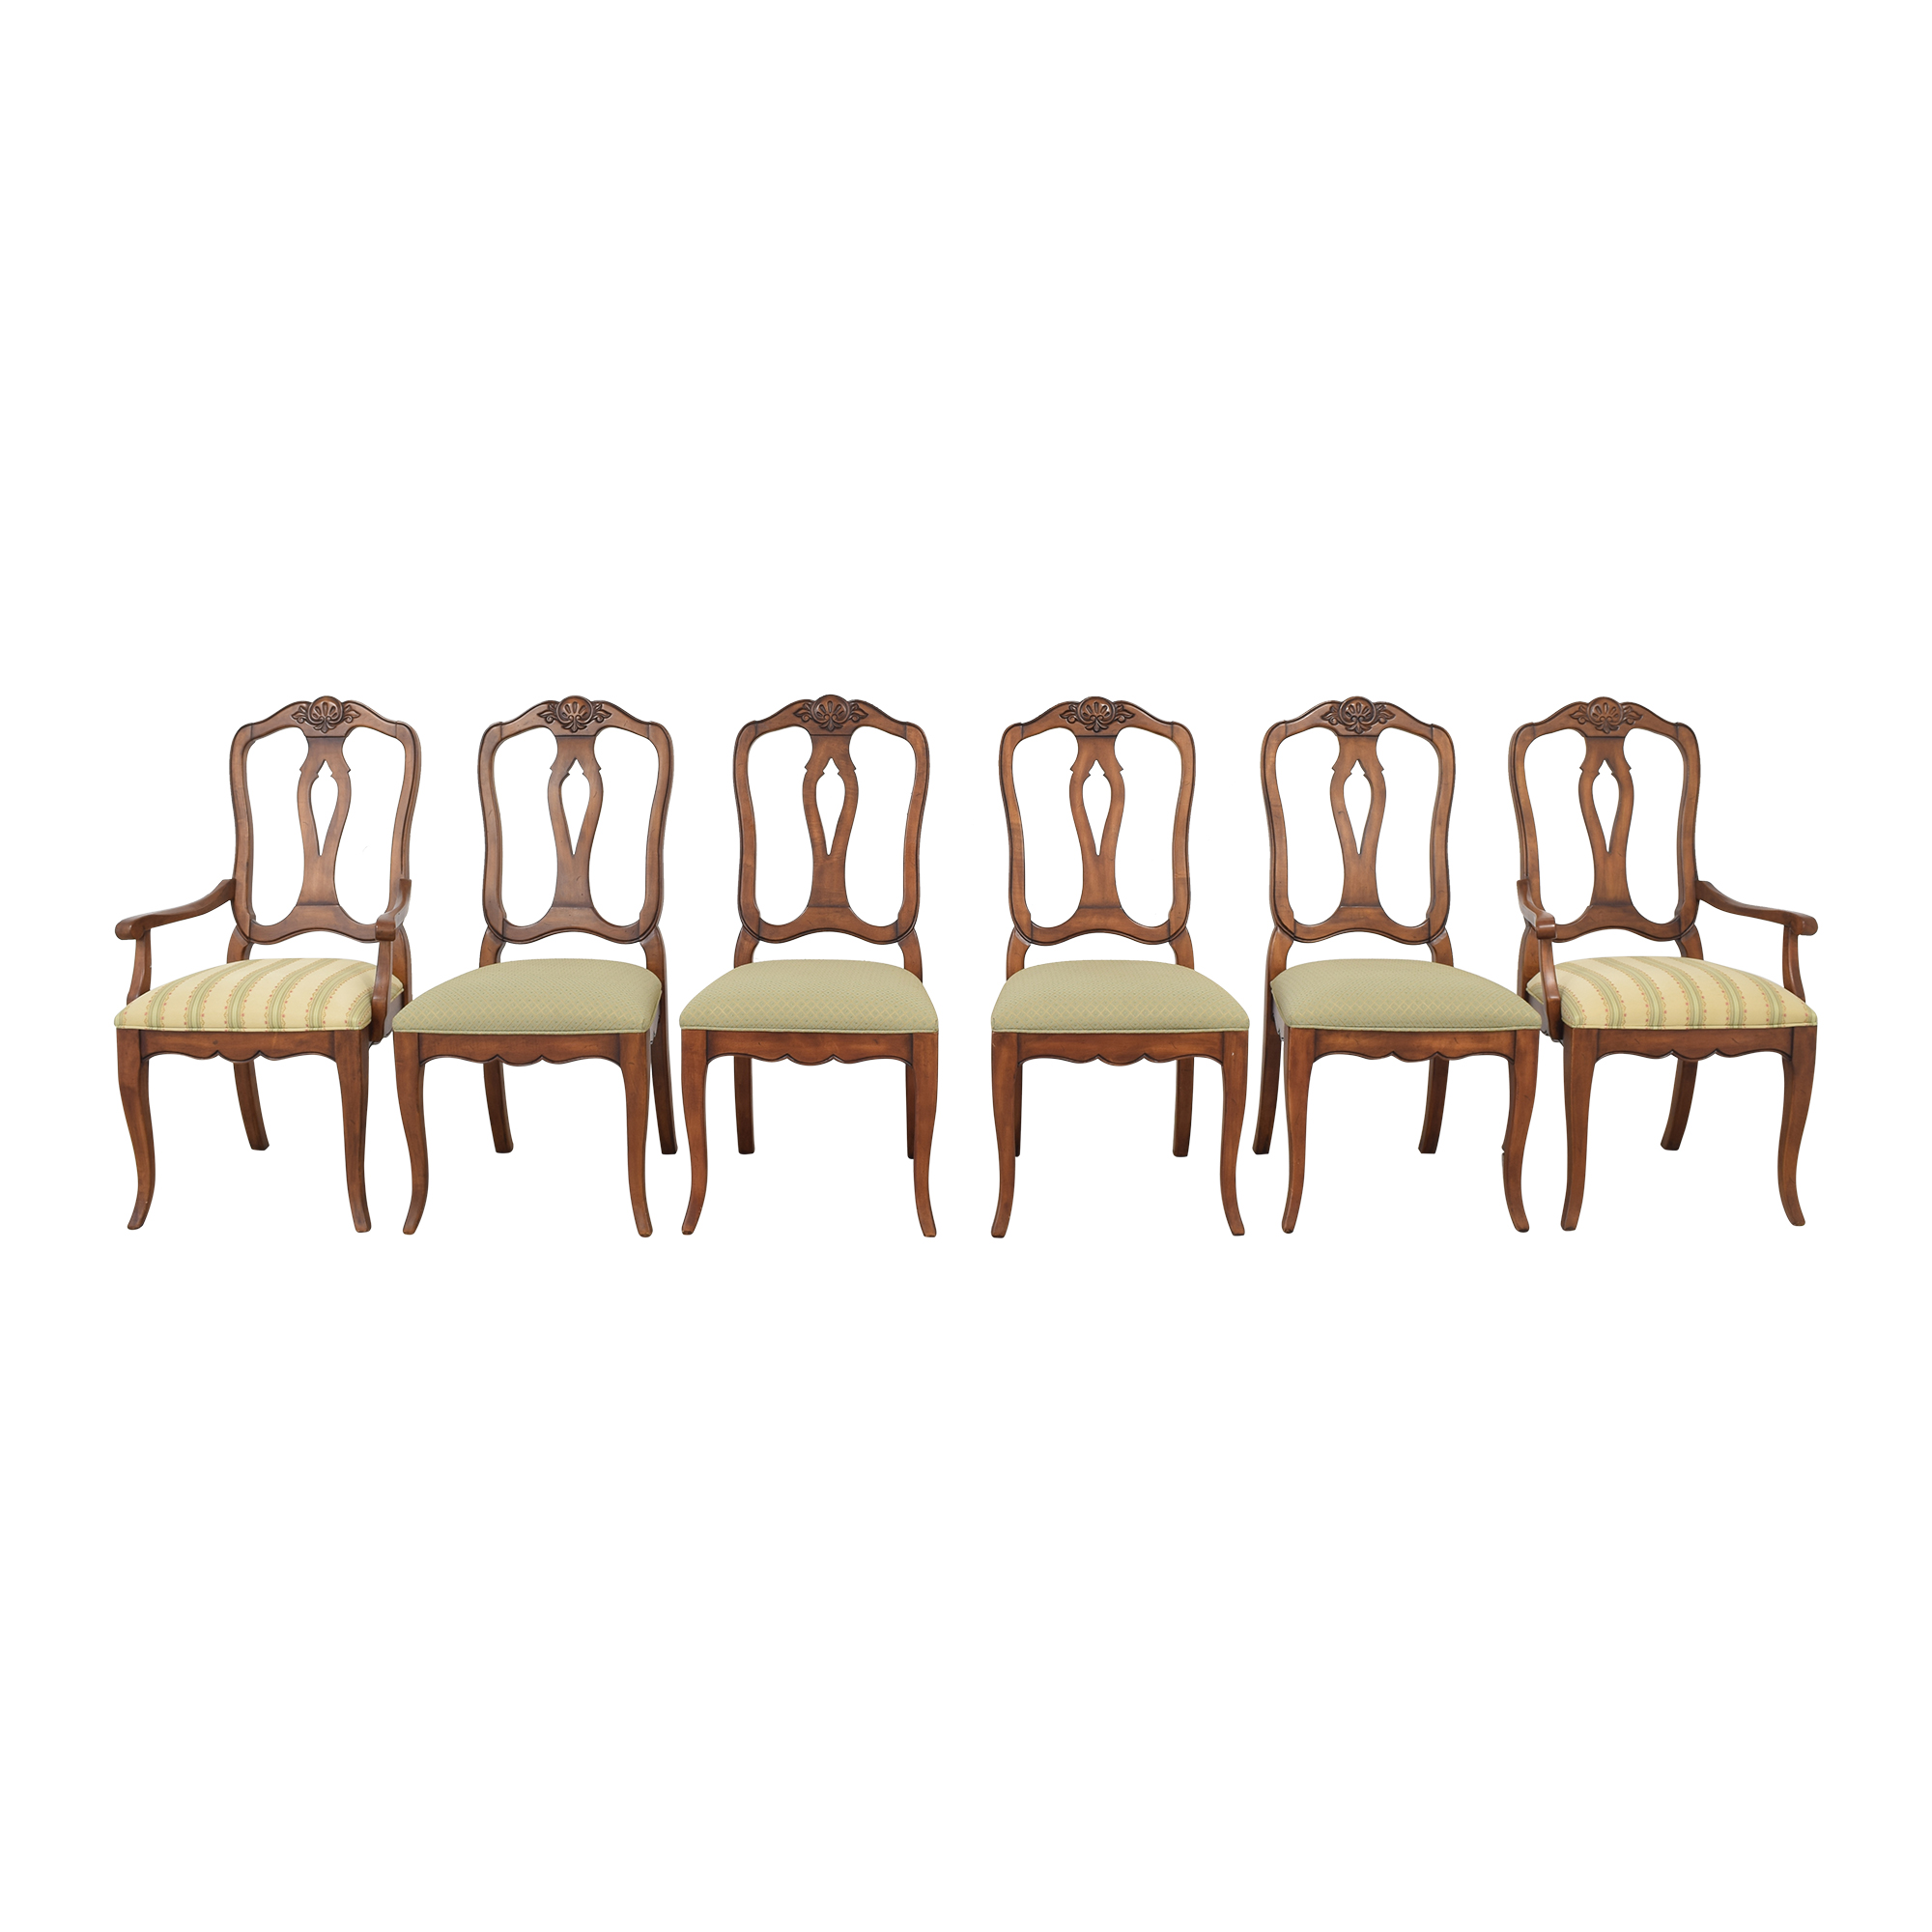 Ethan Allen Ethan Allen Country French Dining Chairs price